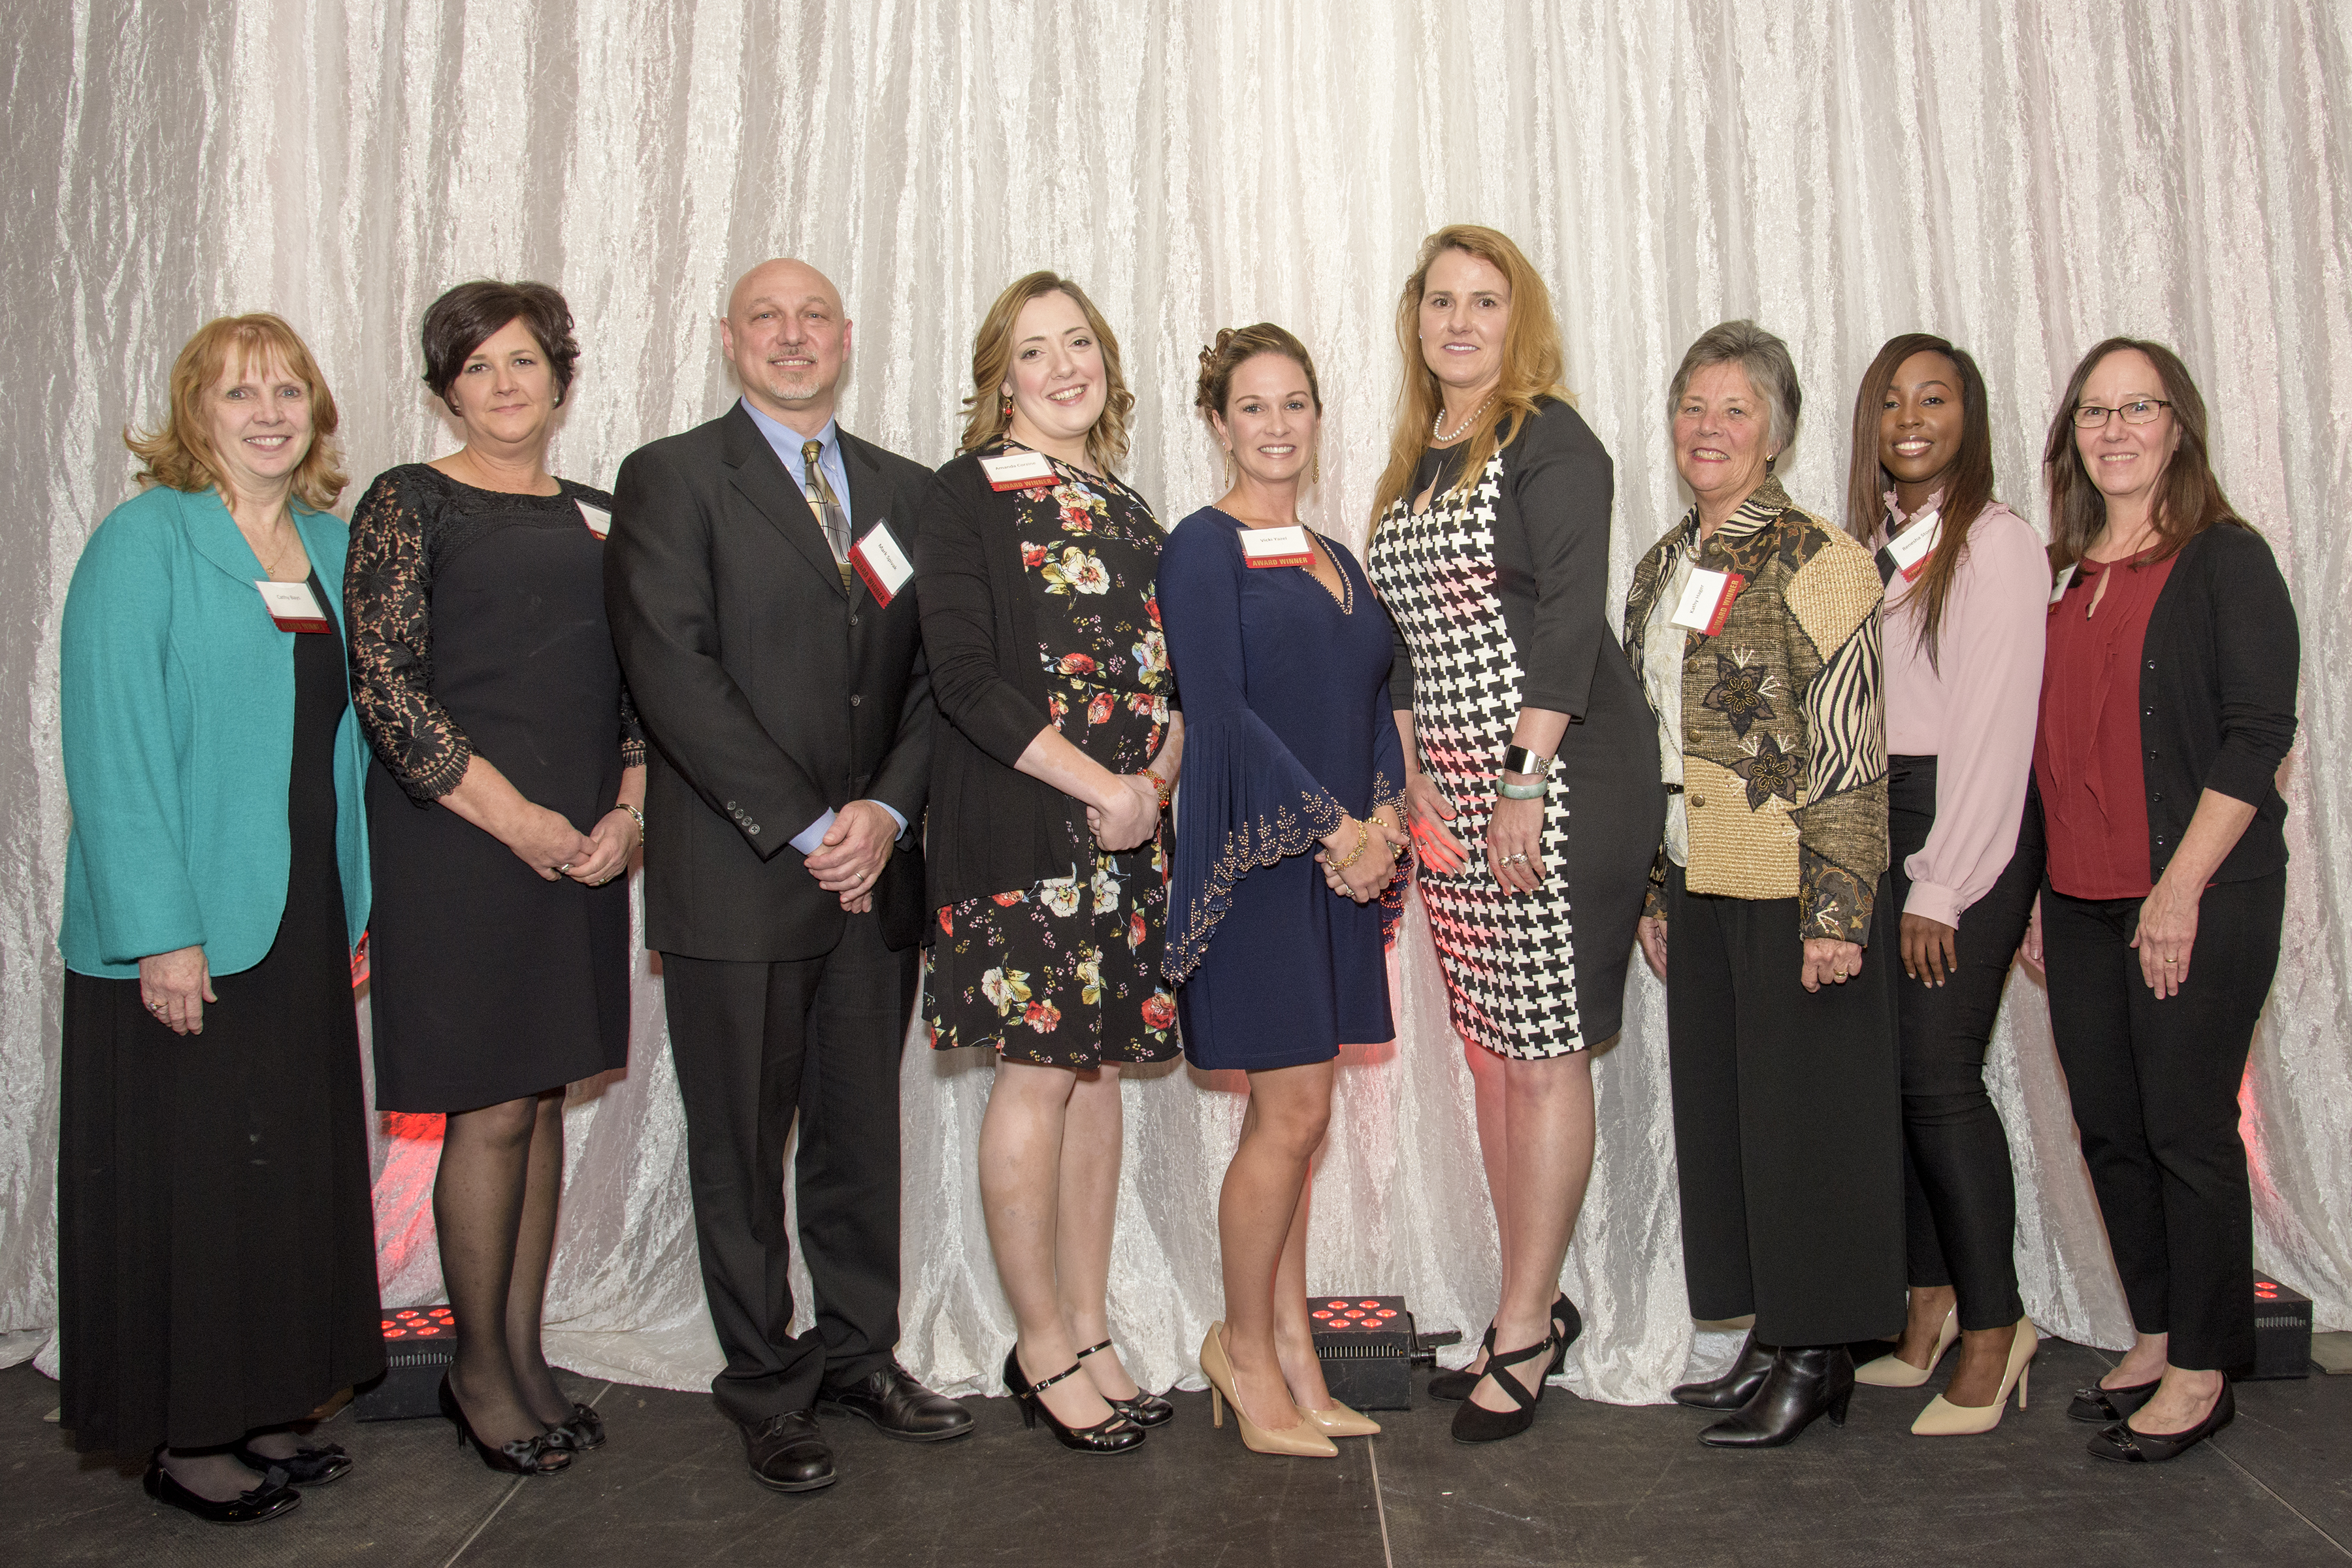 WATCH: UofL Florence Nightingale Awards in Nursing recipients